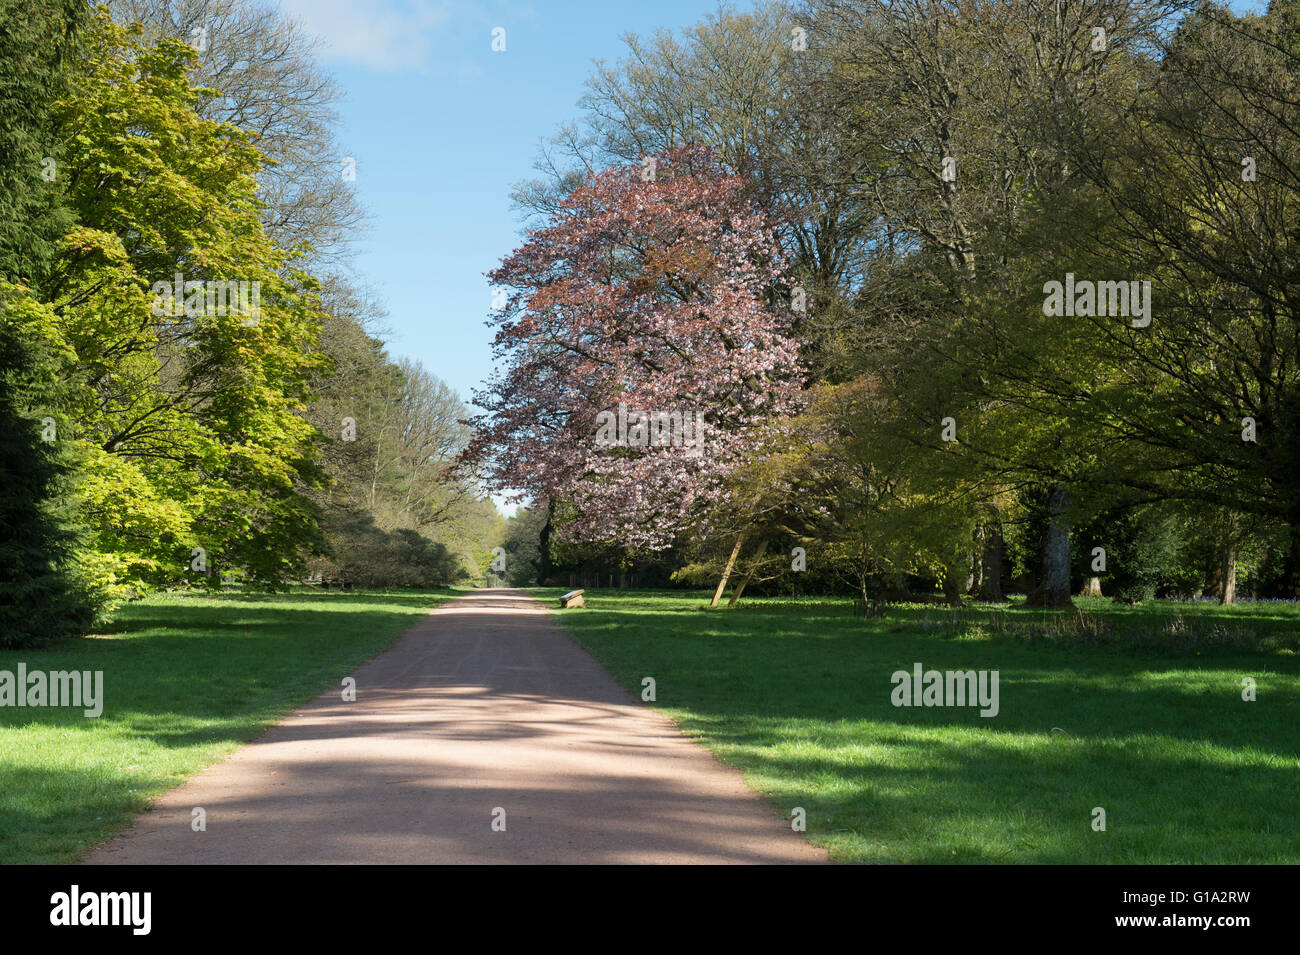 Prunus Sargentii. Sargents cherry tree in blossom on the edge of a ride at Westonbirt Arboretum. Gloucestershire, England Stock Photo